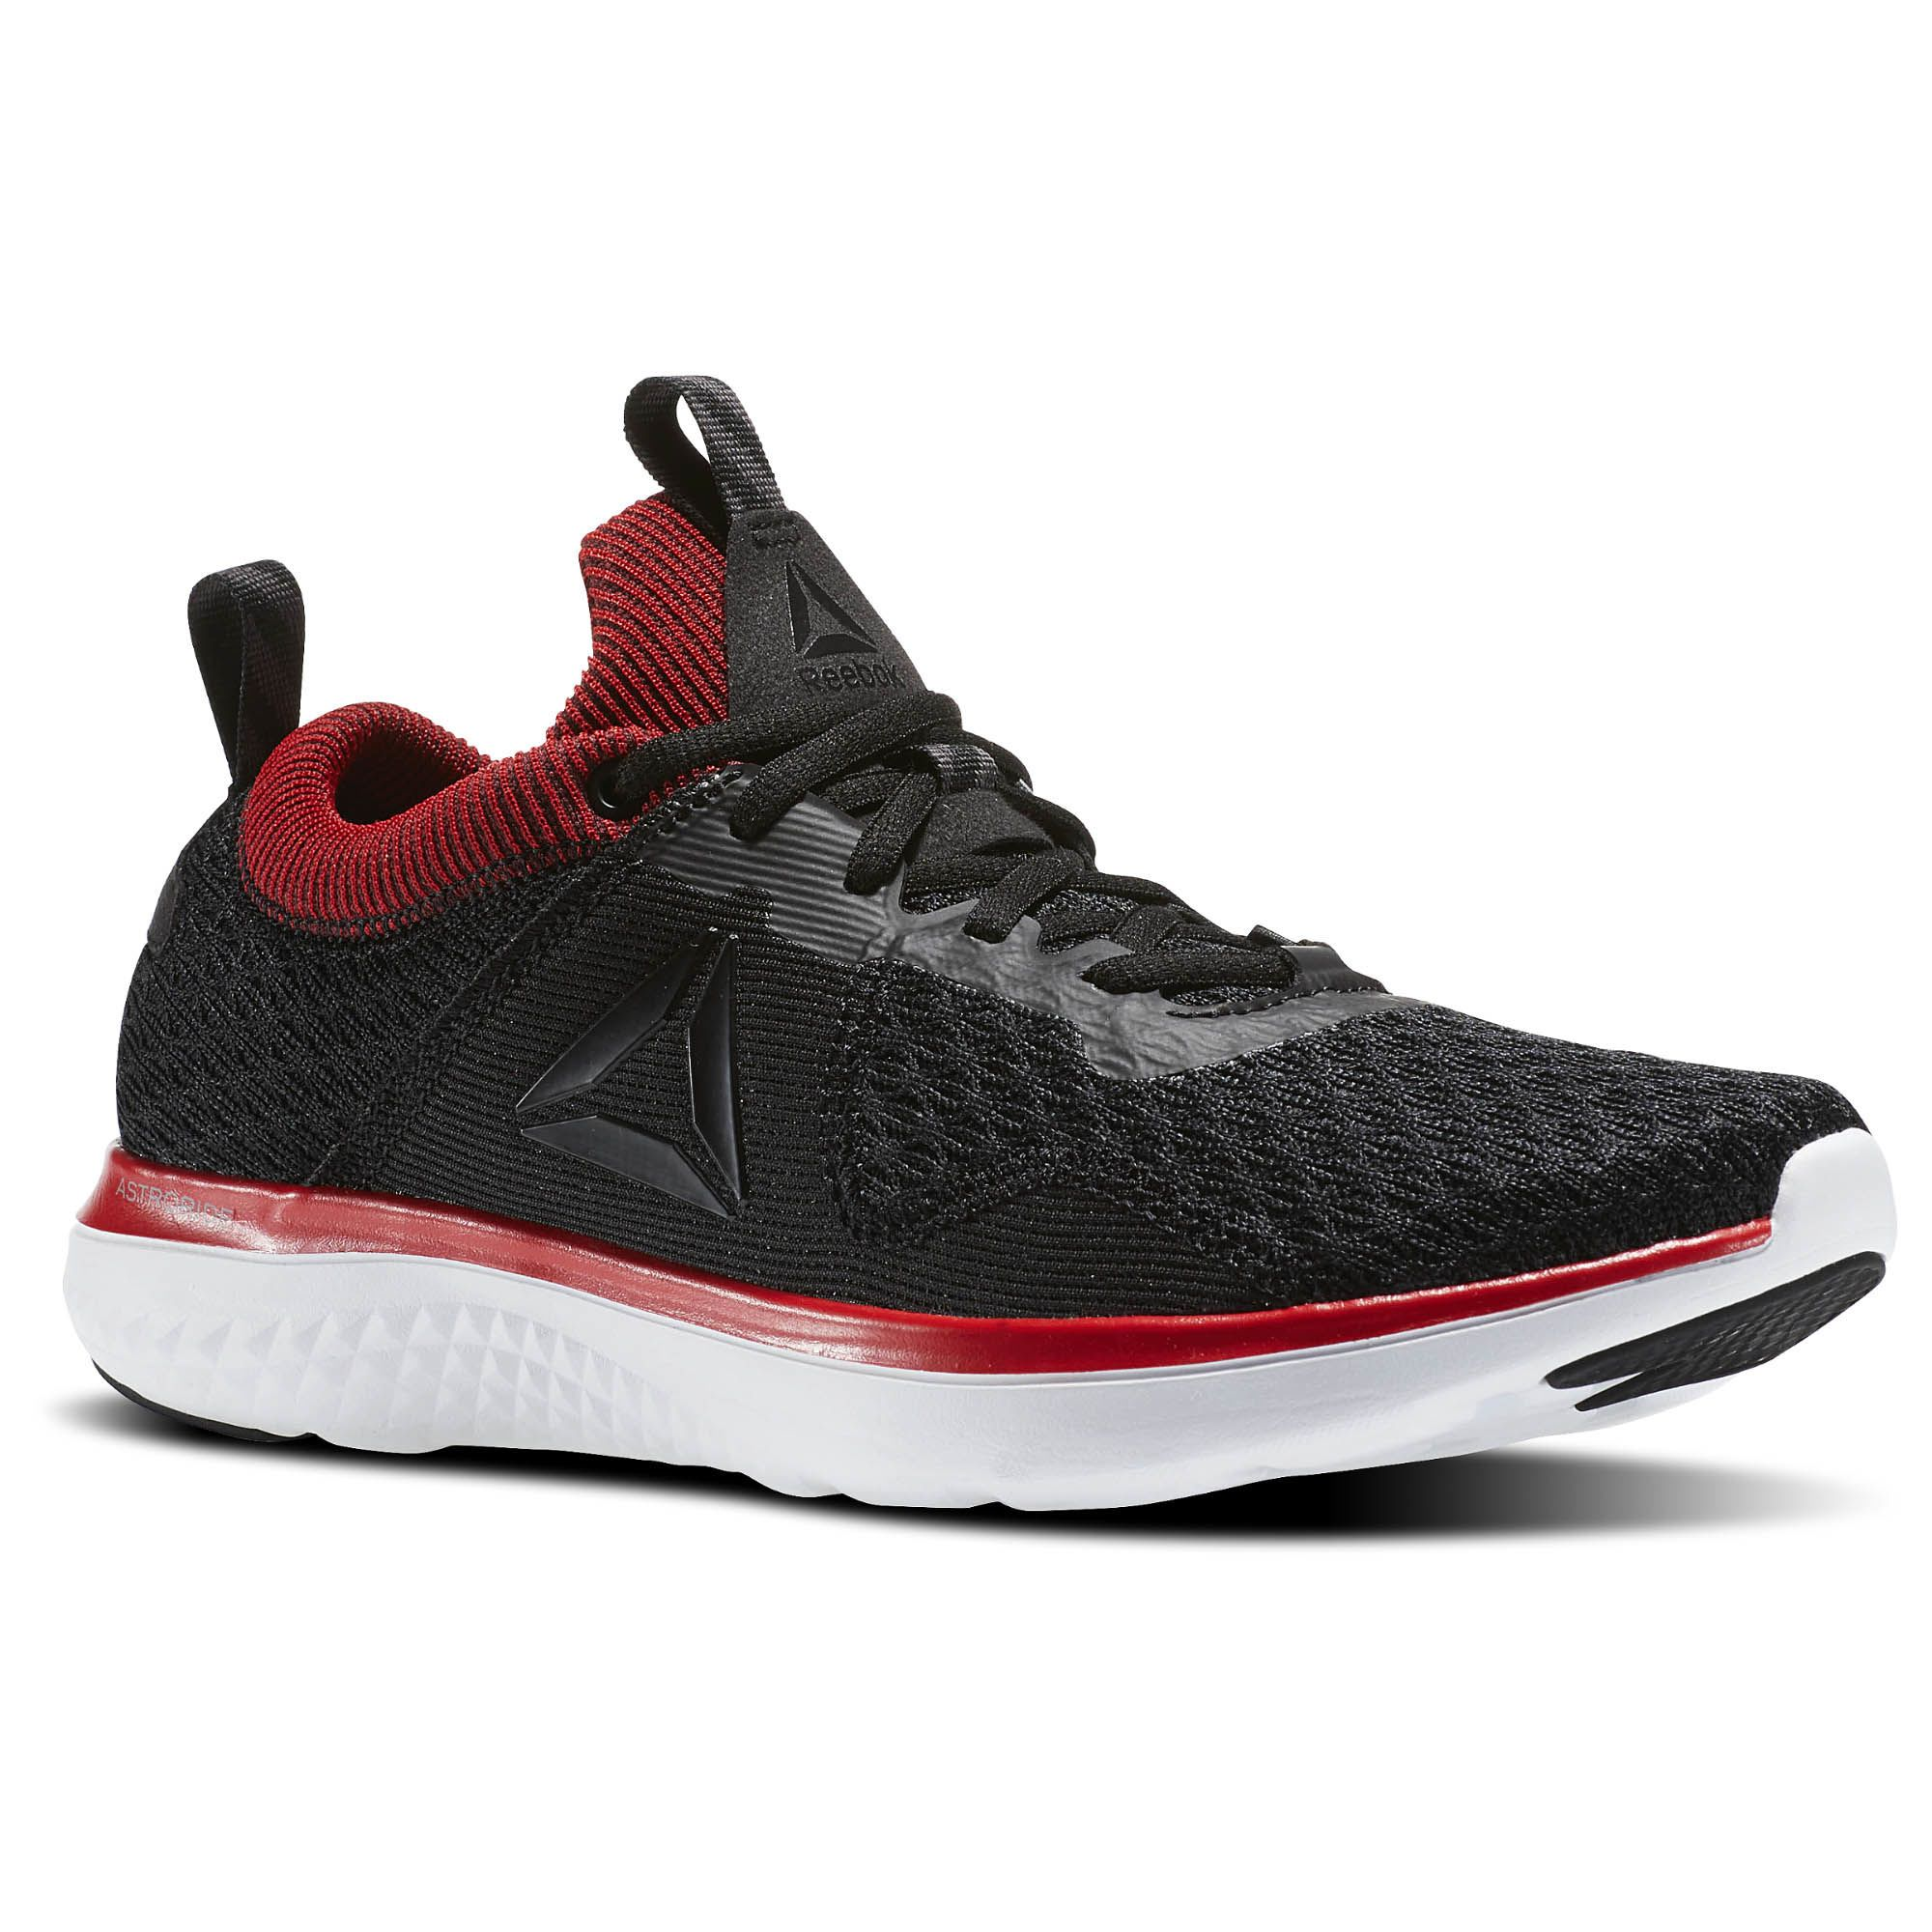 1332020d344421 Reebok - Men s Astroride Run Fire MTM (size 11)  Textile and Synthetic  Rubber